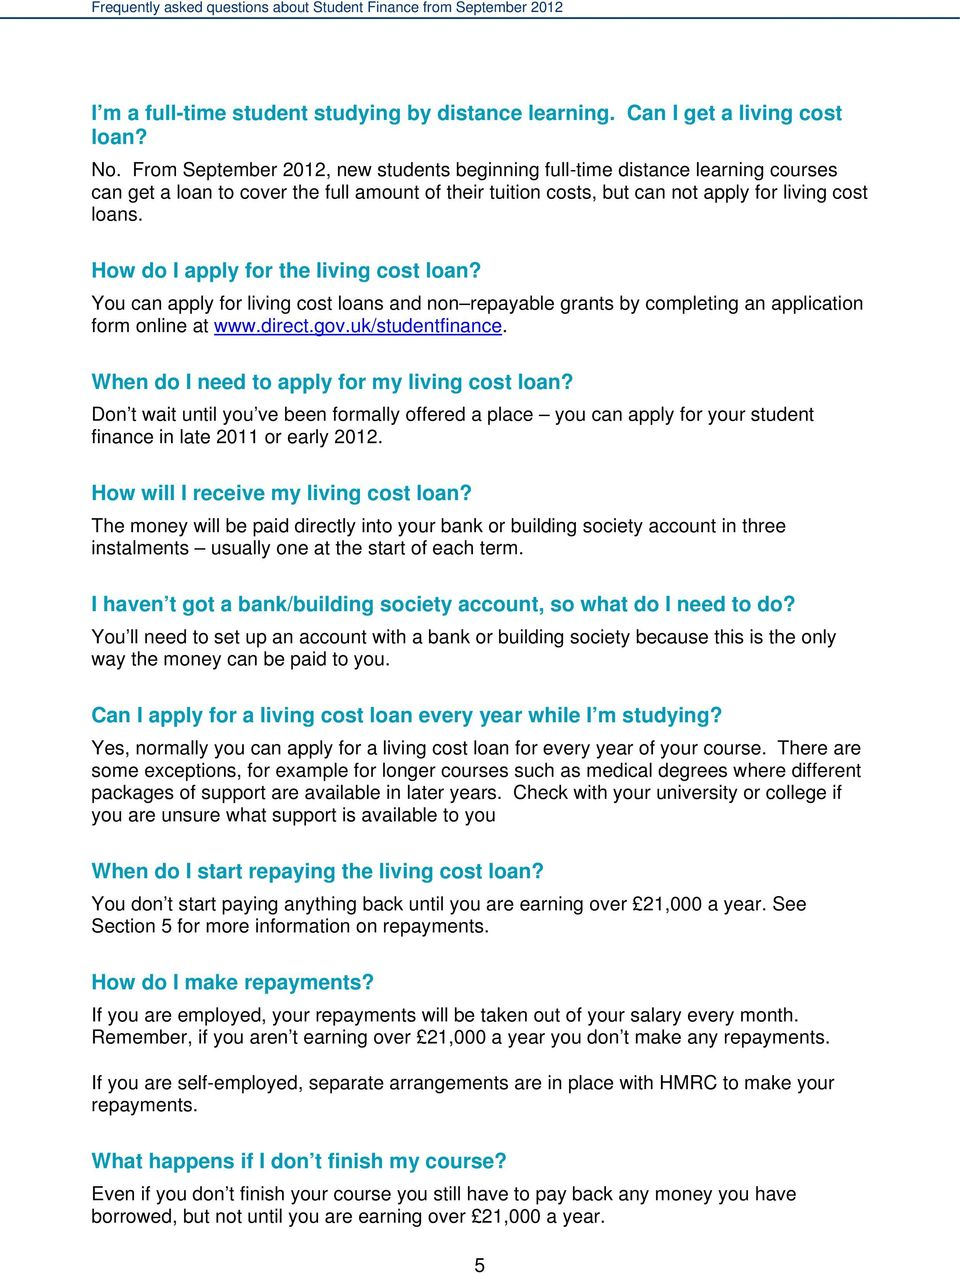 How do I apply for the living cost loan? You can apply for living cost loans and non repayable grants by completing an application form online at www.direct.gov.uk/studentfinance.